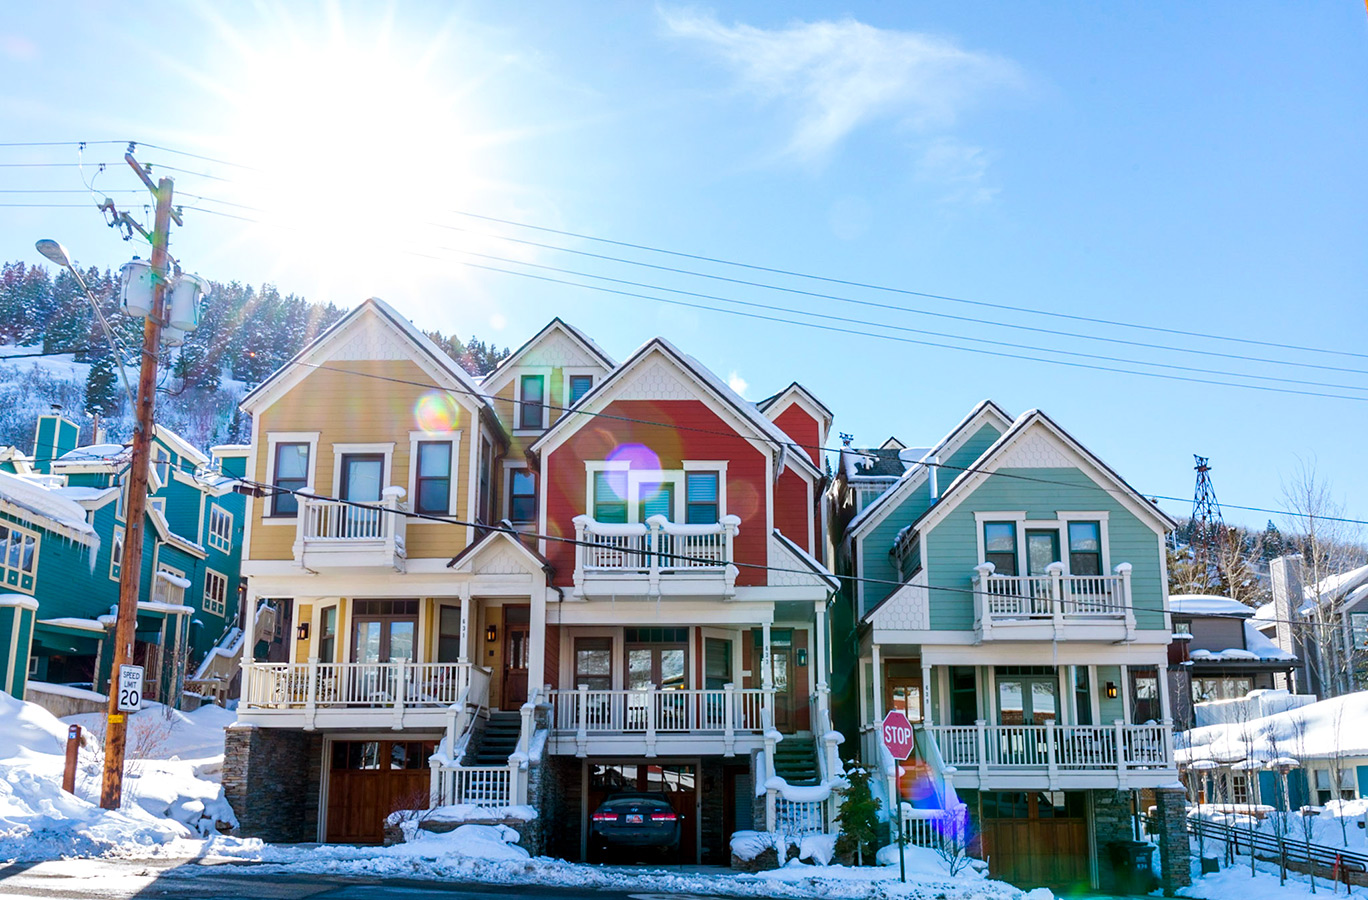 PArk City colourful houses